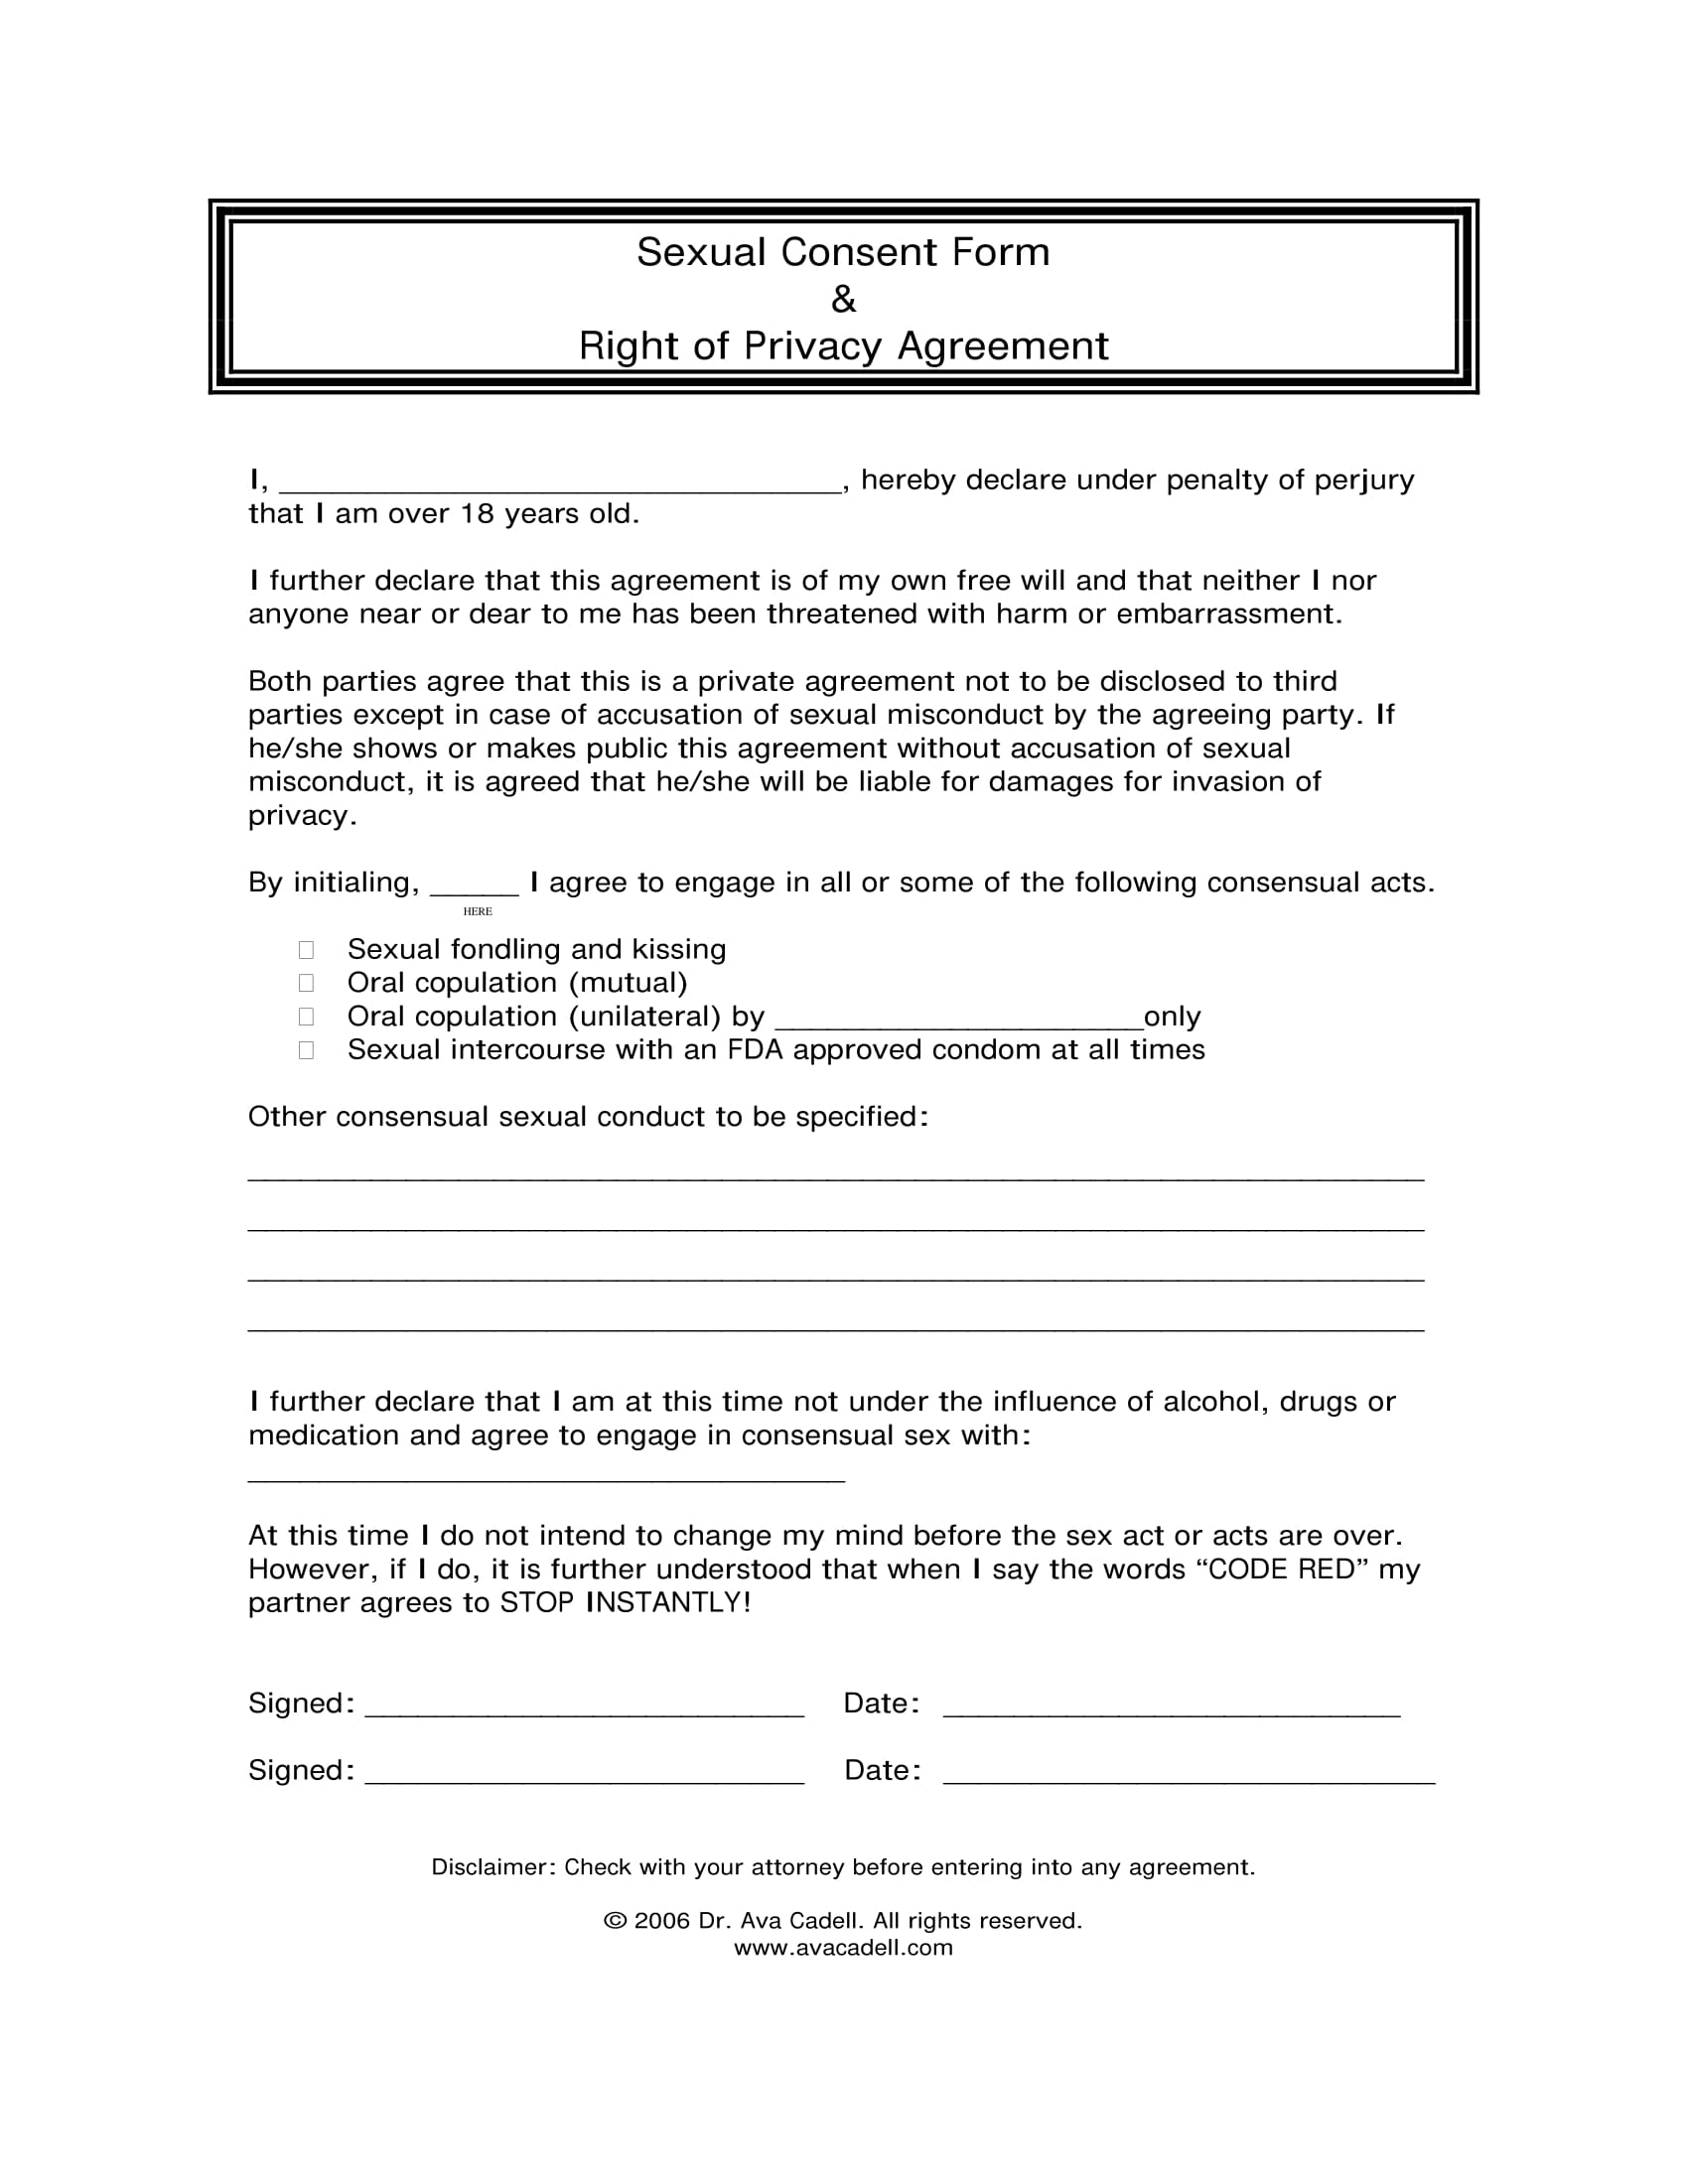 sexual consent privacy agreement contract form 1